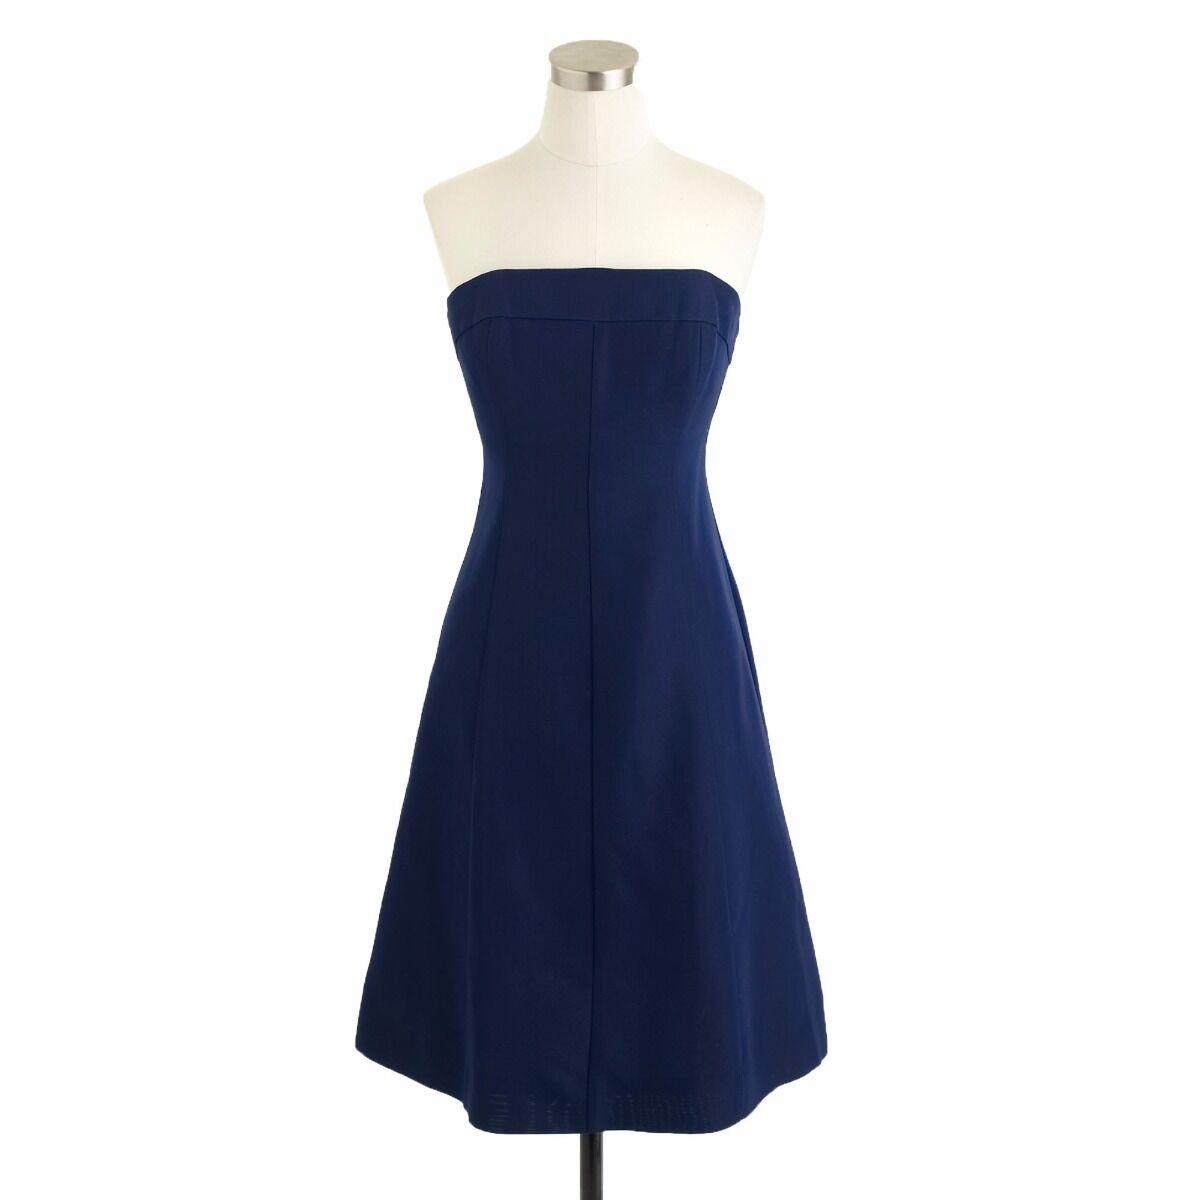 J CREW MAISIE DRESS IN CLASSIC FAILLE 6 S Small M Medium Haven bluee Navy NEW